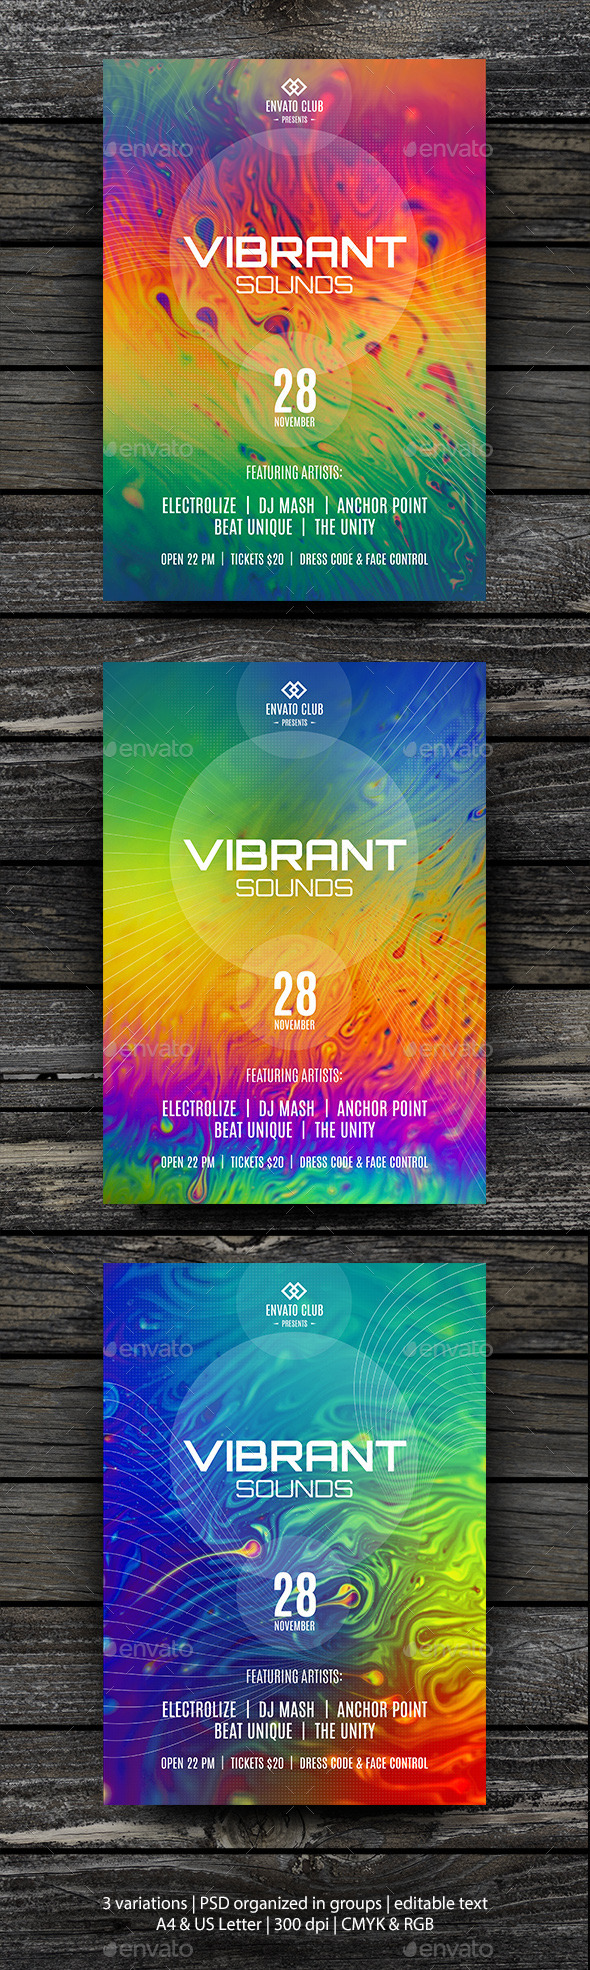 Vibrant Sounds Party Flyer Template - Clubs & Parties Events